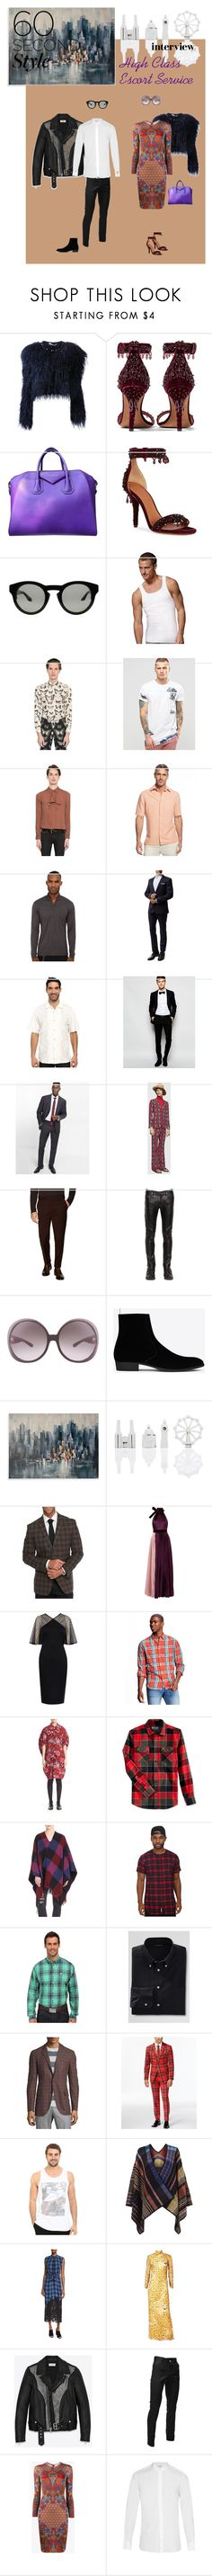 """""""Gracious Companions Escort Service"""" by tess-jr ❤ liked on Polyvore featuring Givenchy, Hanes, Alexander McQueen, Sik Silk, BLK DNM, Tasso Elba, The Kooples, Sandro, Tommy Bahama and Number Eight Savile Row"""